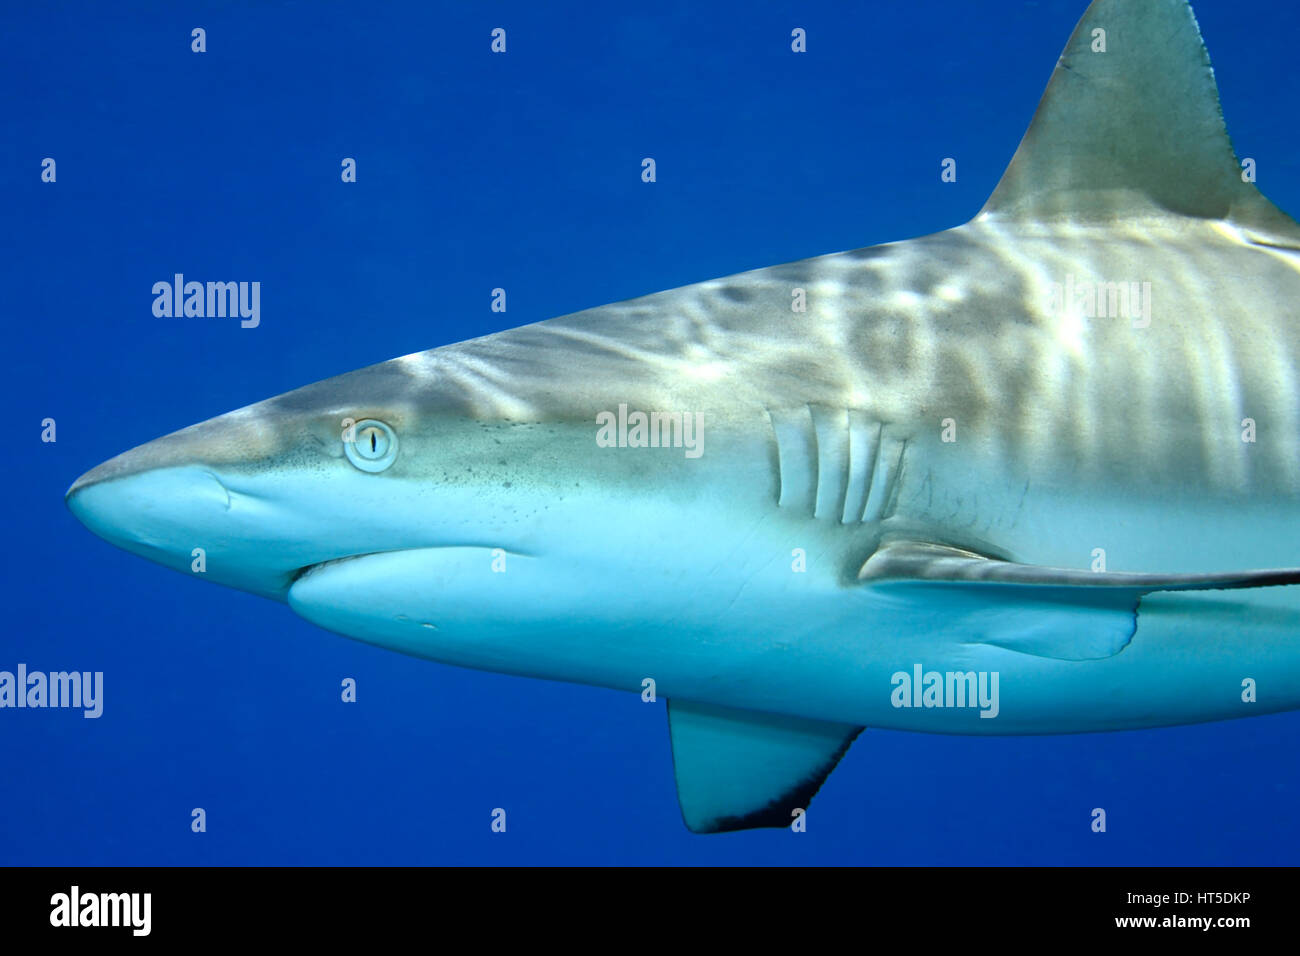 Grey Reef Shark, Carcharhinus amblyrhynchos. Close up detail of face, mouth and gills. Blue water background - Stock Image